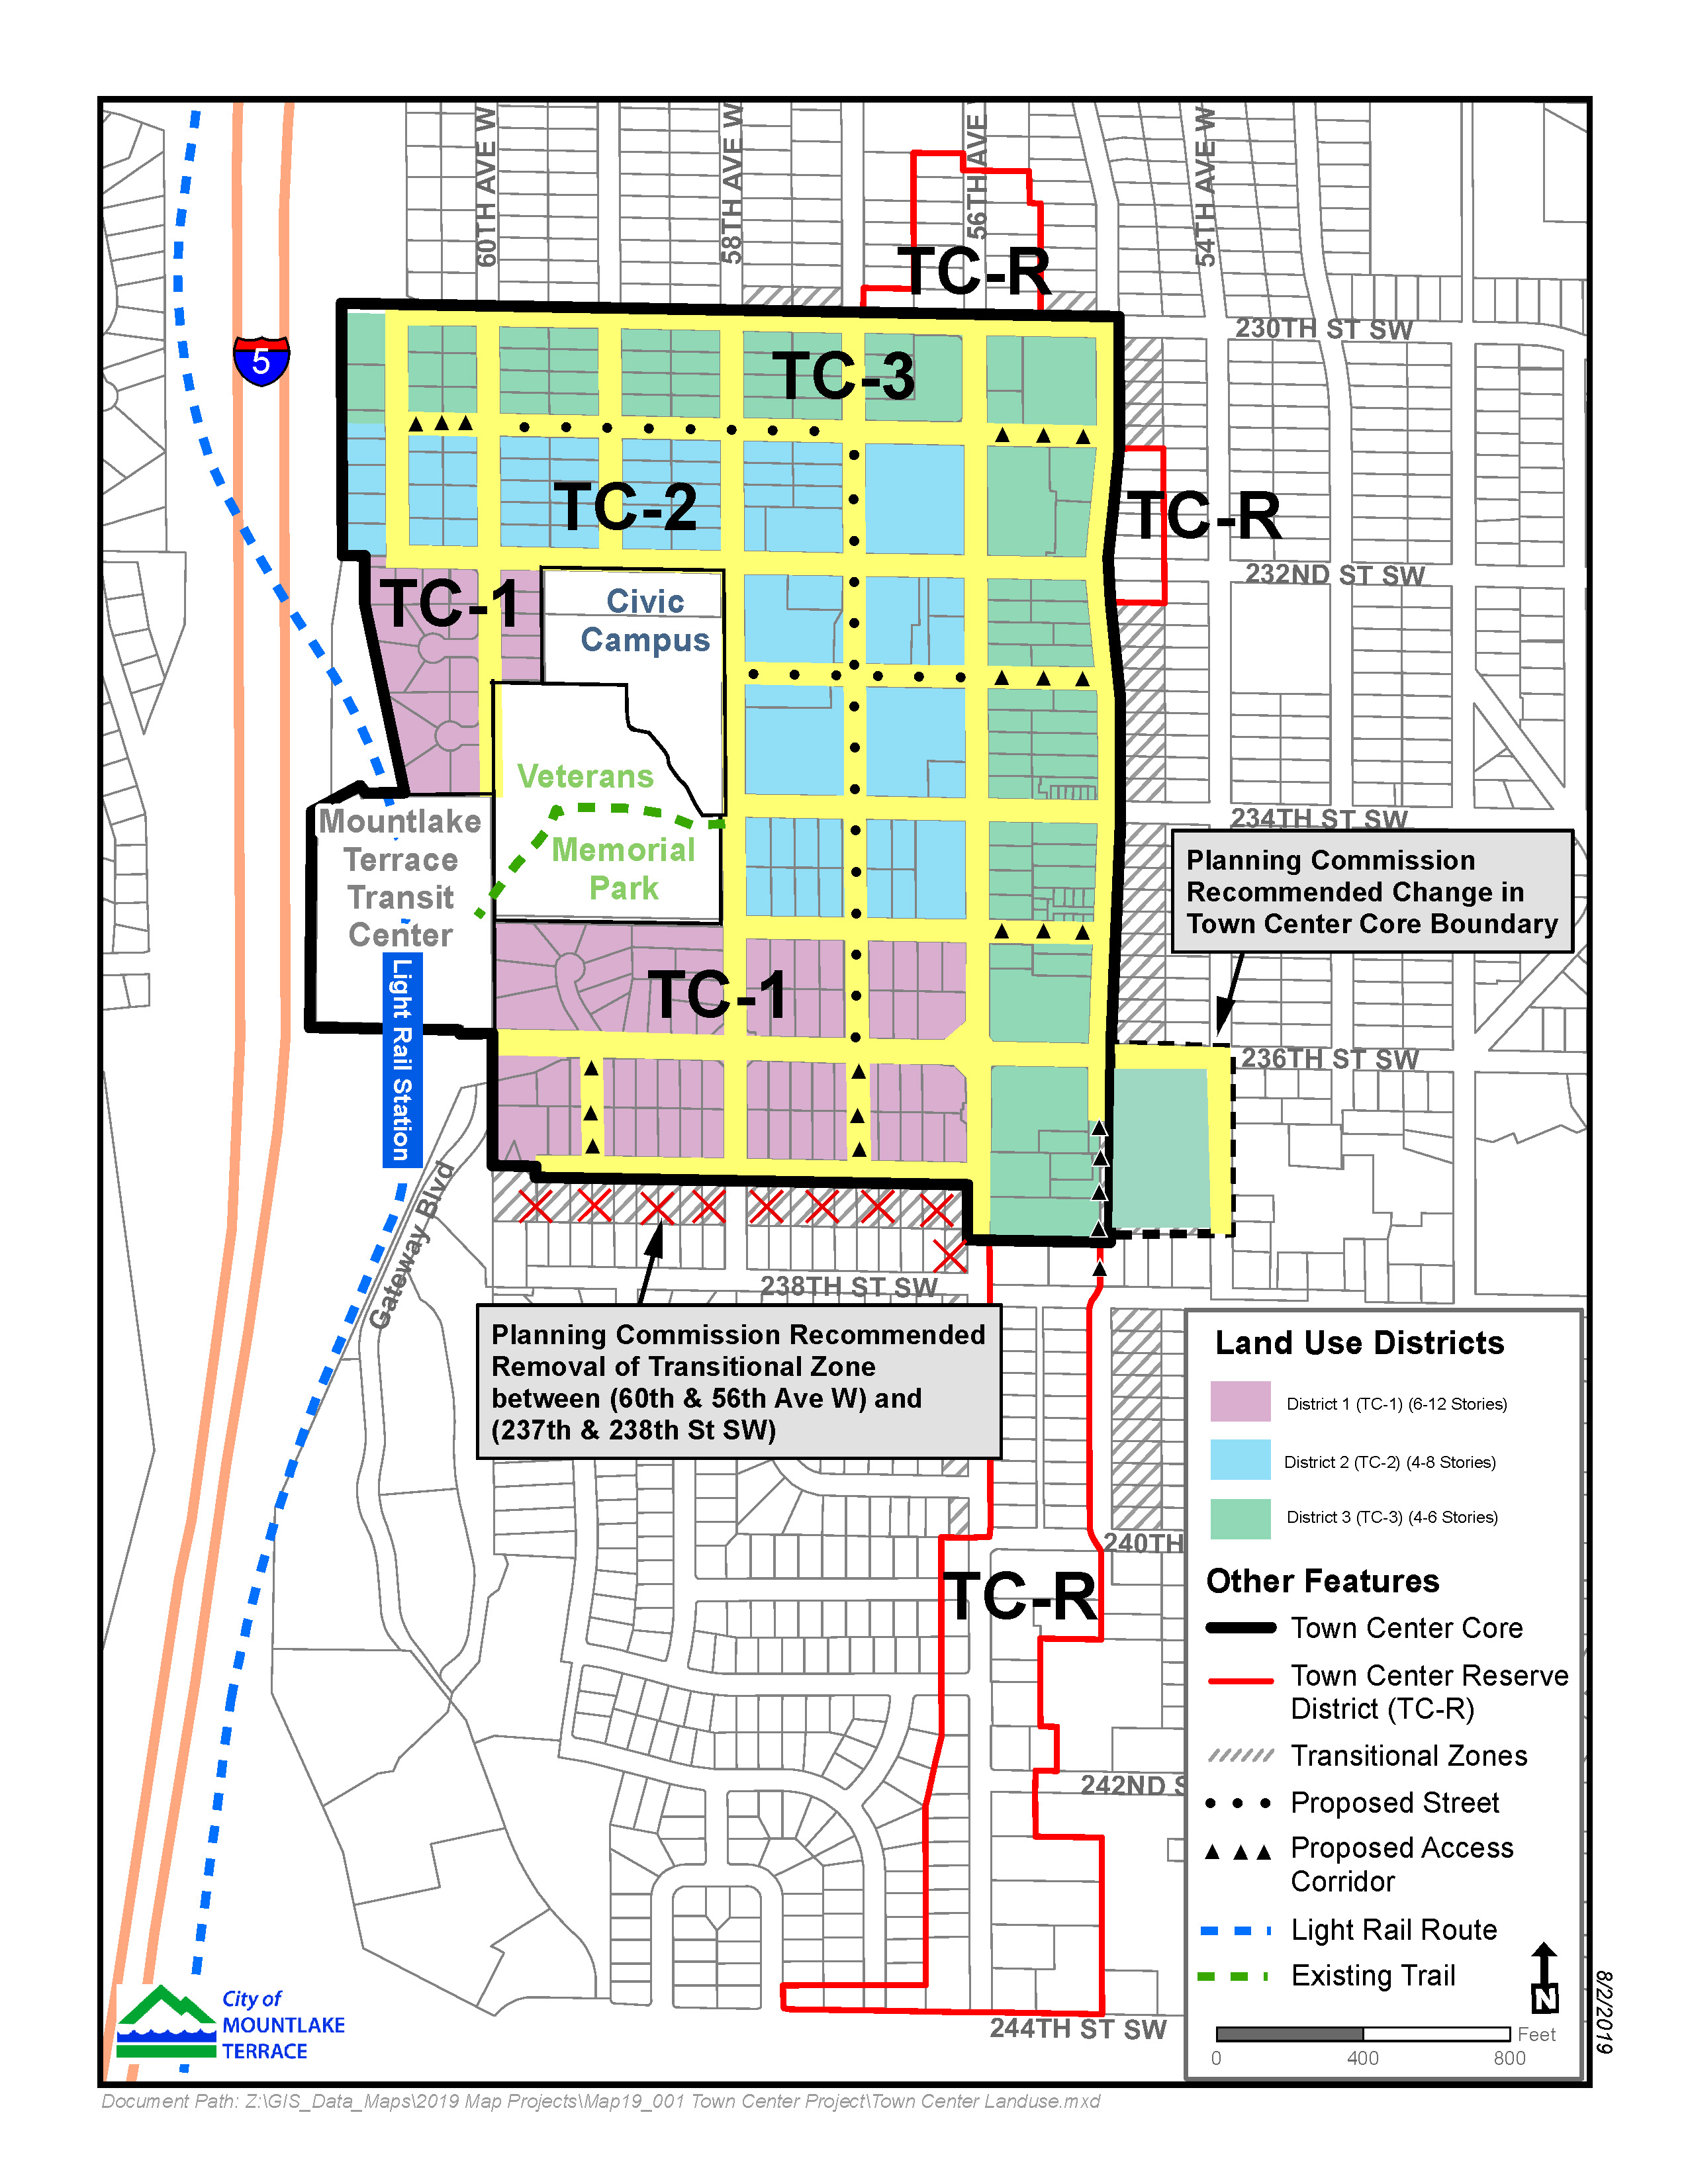 Town Center Map Recommended by Planning Commission